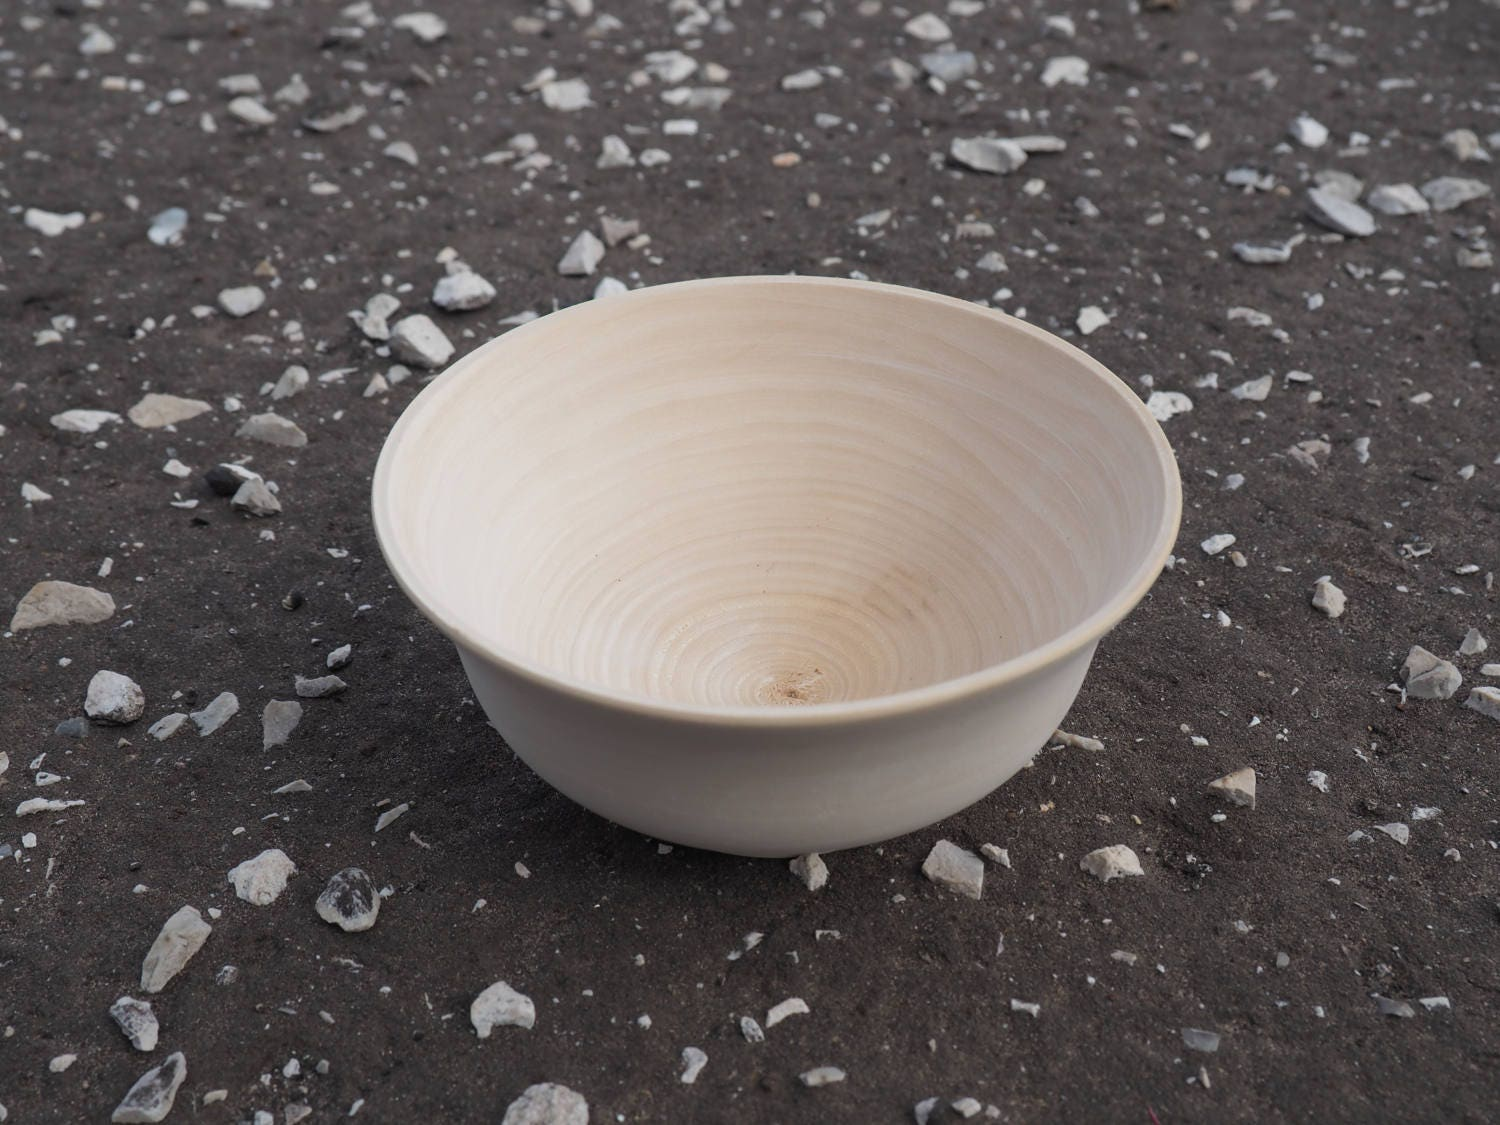 Wood bowl chip carving basswood blanks blank unpainted